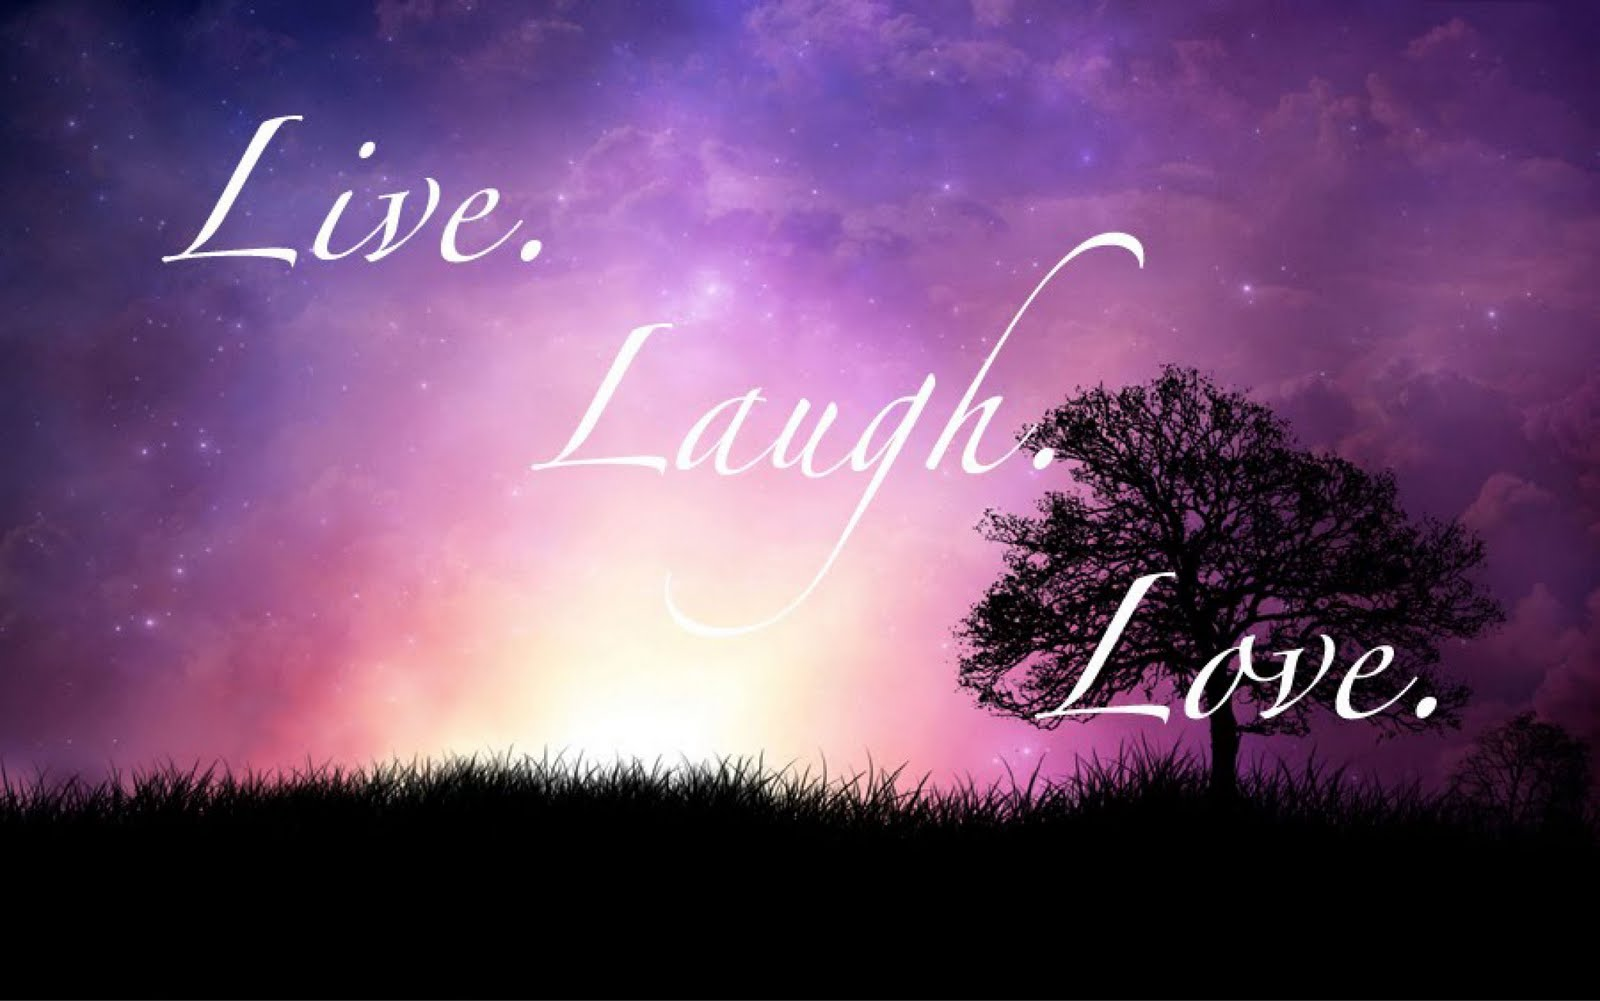 Love Live Wallpaper Hd For Pc : Live Laugh Love Desktop Wallpaper - WallpaperSafari